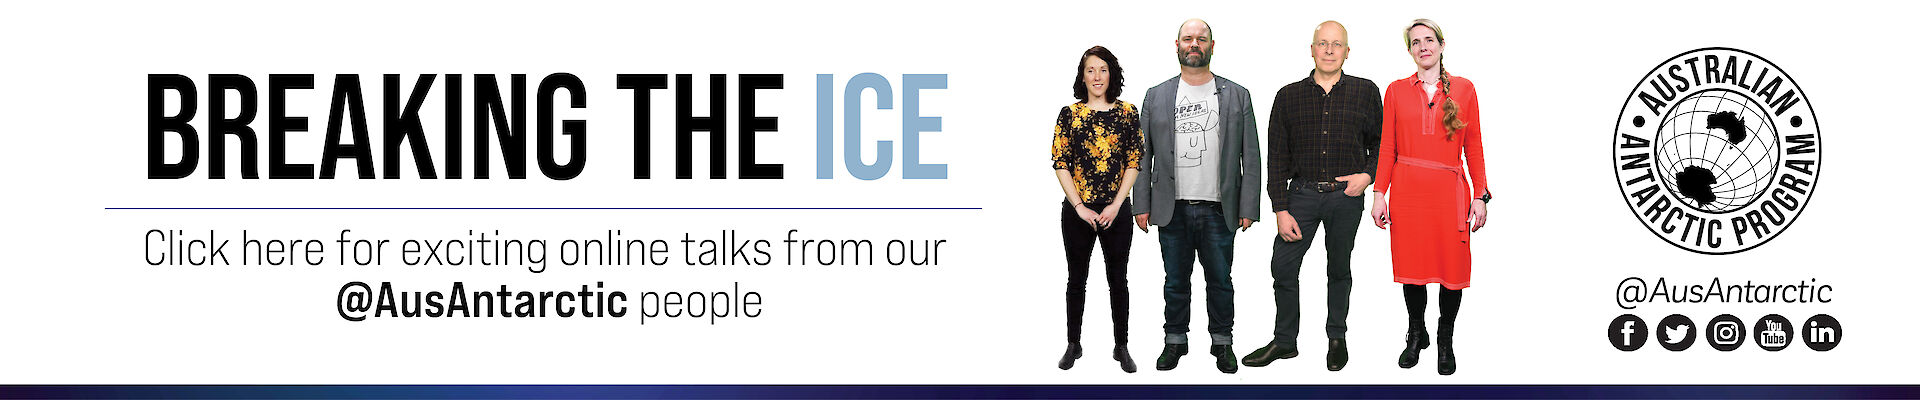 Breaking the Ice – join us during National Science Week for online presentations from our leading scientists